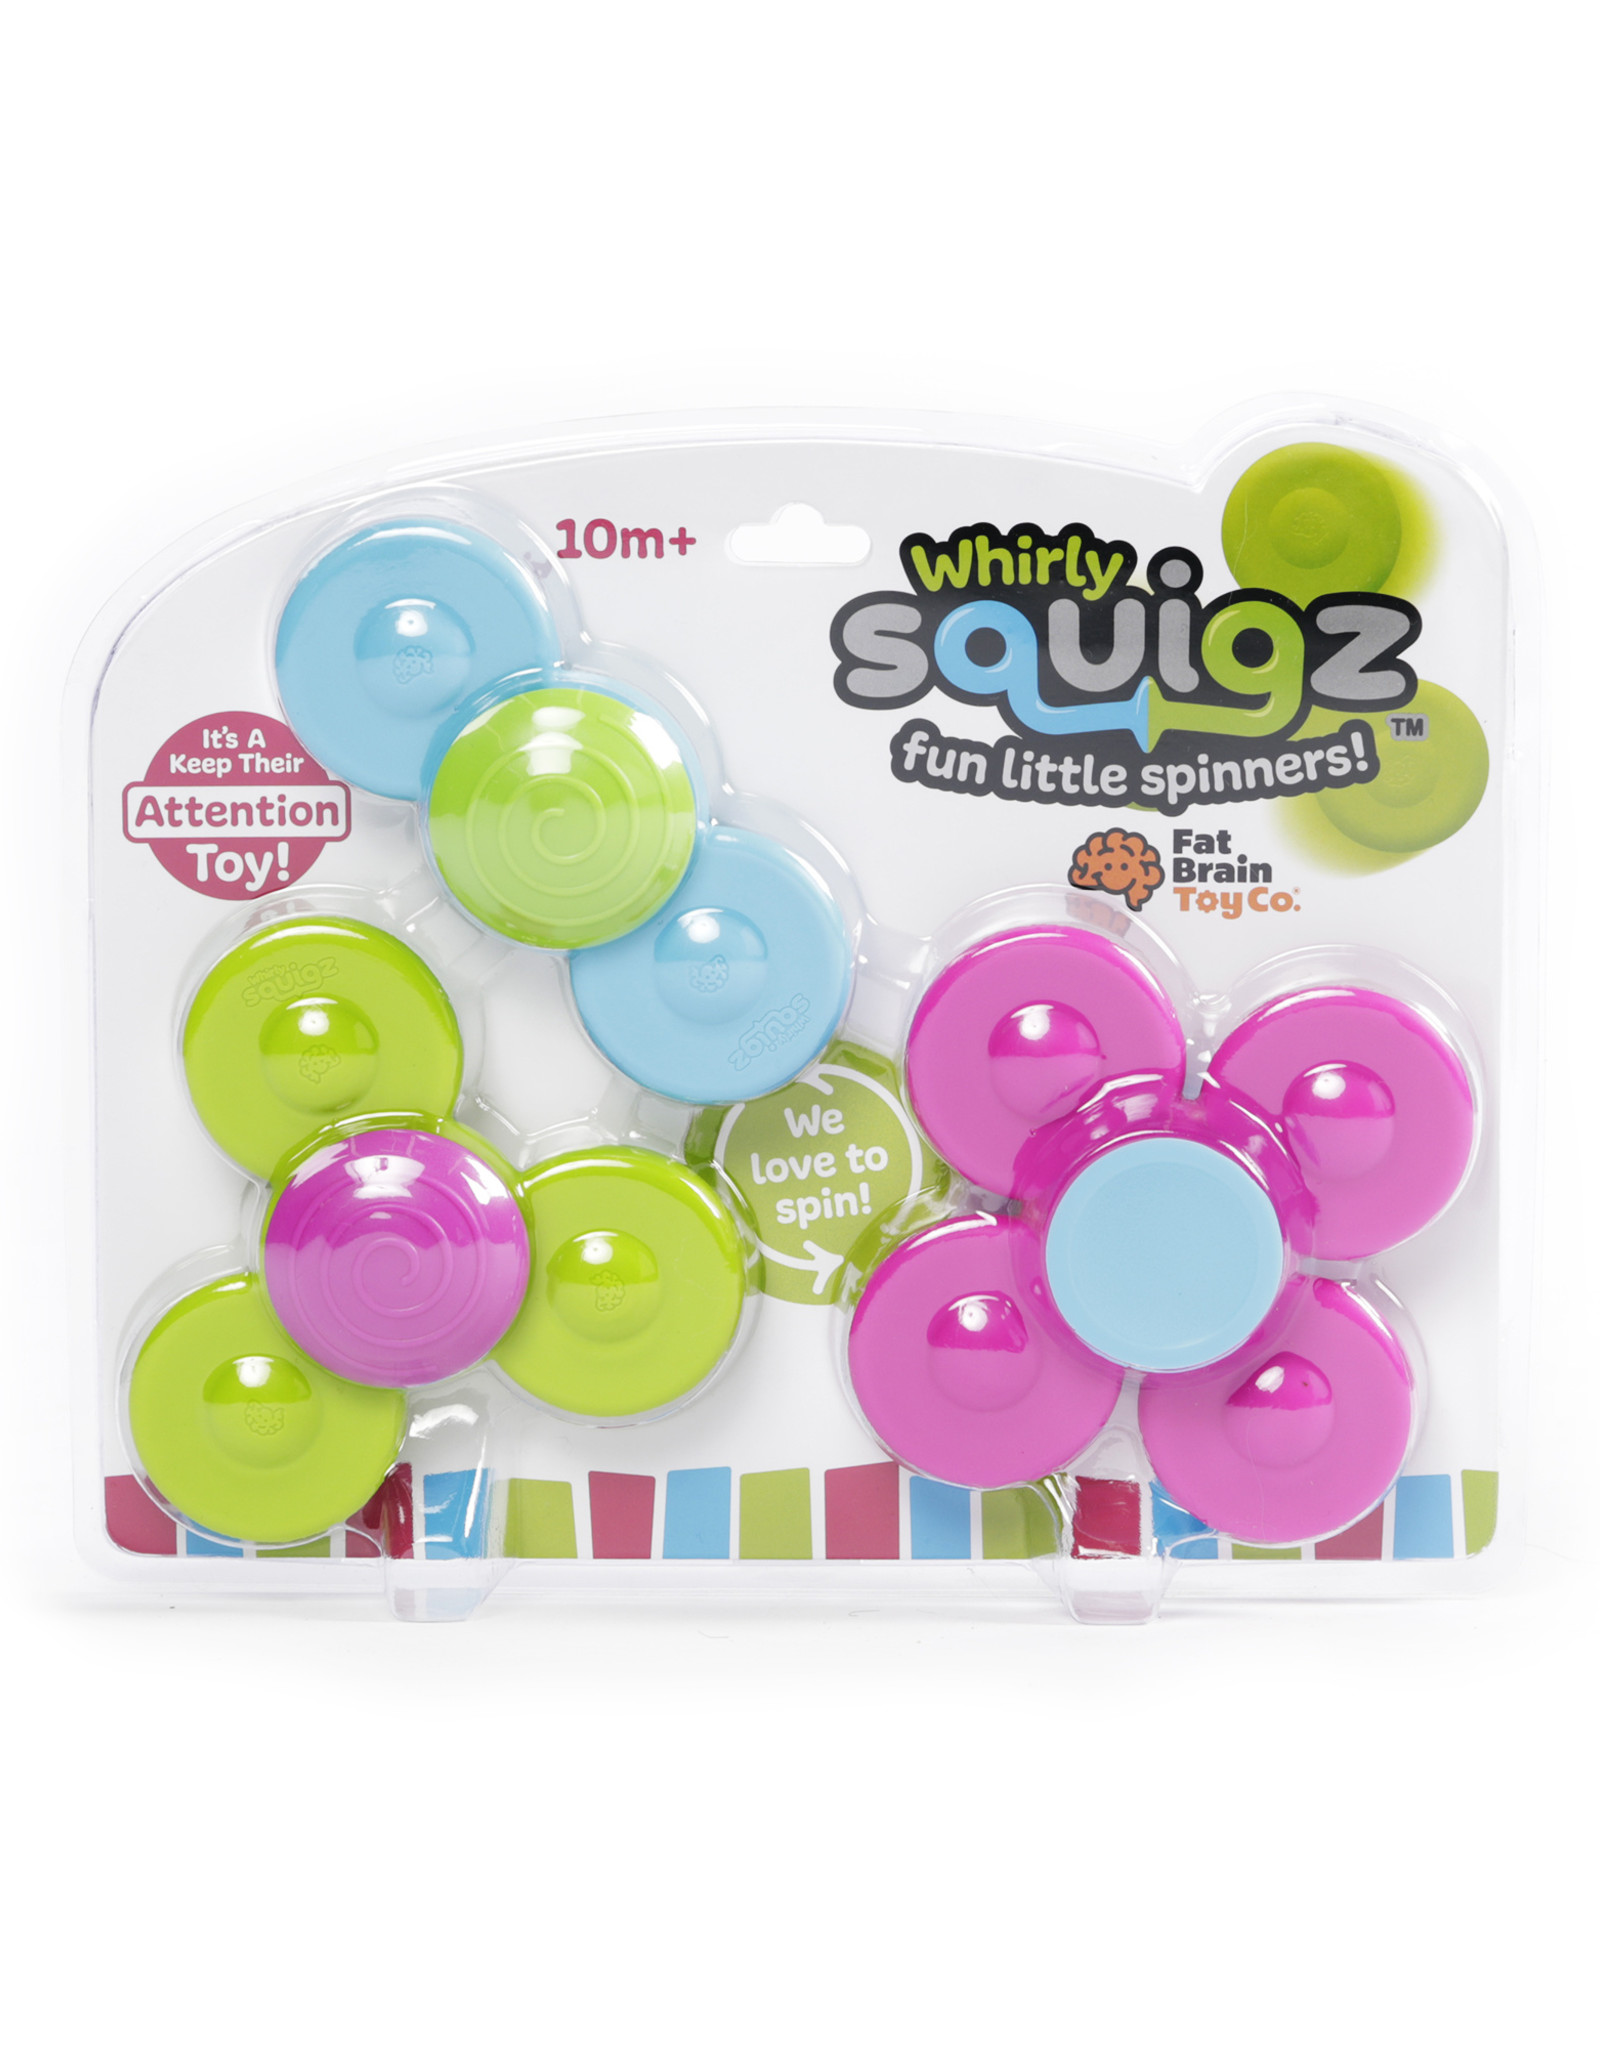 Fat Brain Toy Co. Whirly Squigz - Set of 3